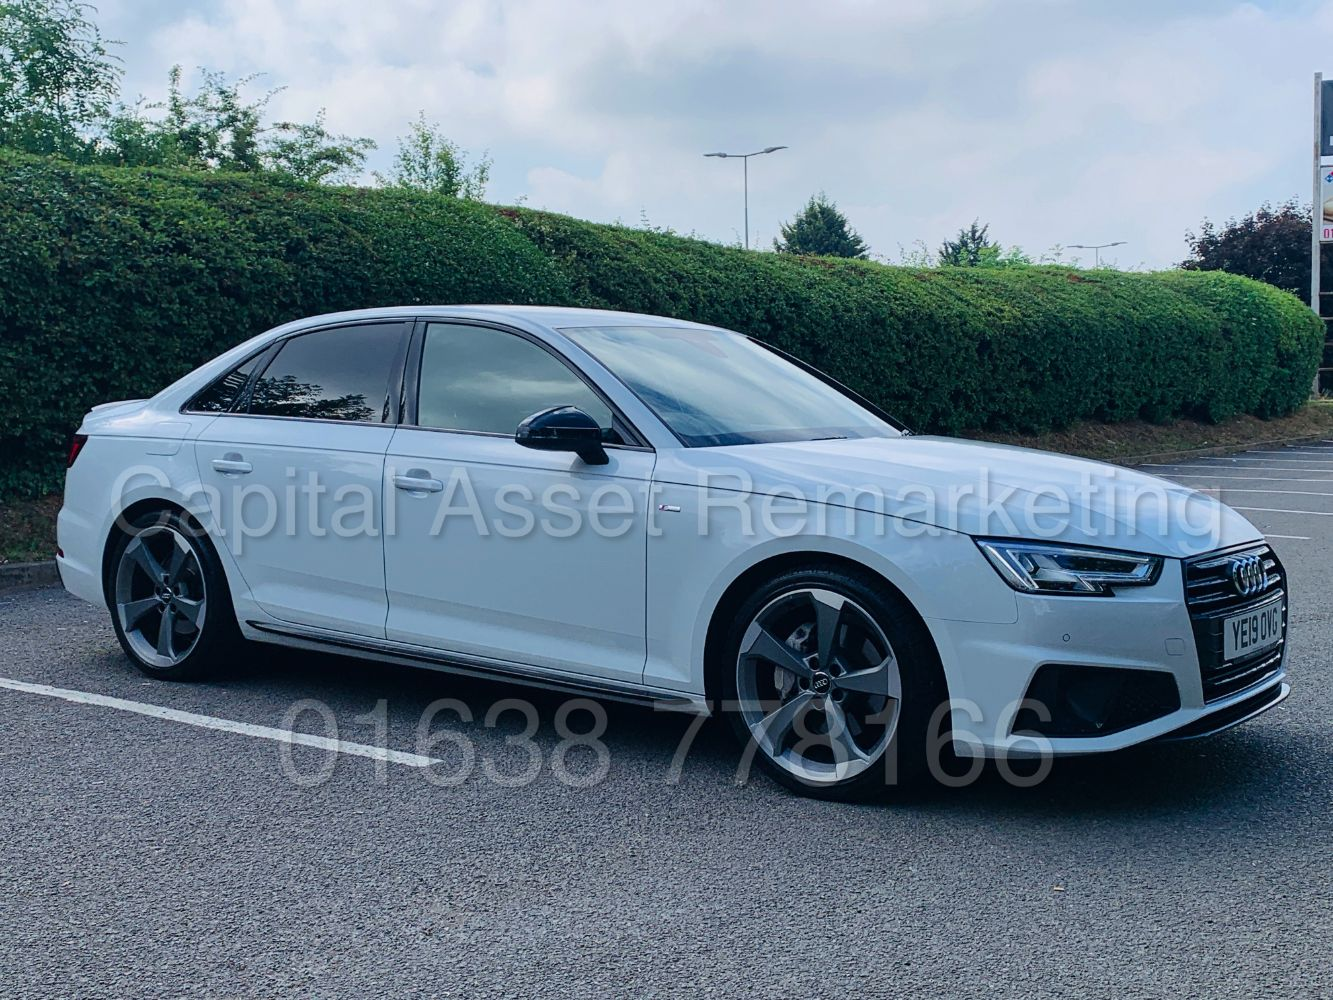 2019 Audi A4 *S-Line - Black Edition* - 2018 Volkswagen Golf *R-Line* - 2018 Vauxhall Insignia *Design Nav* + Many More: Cars, Commercials & 4x4